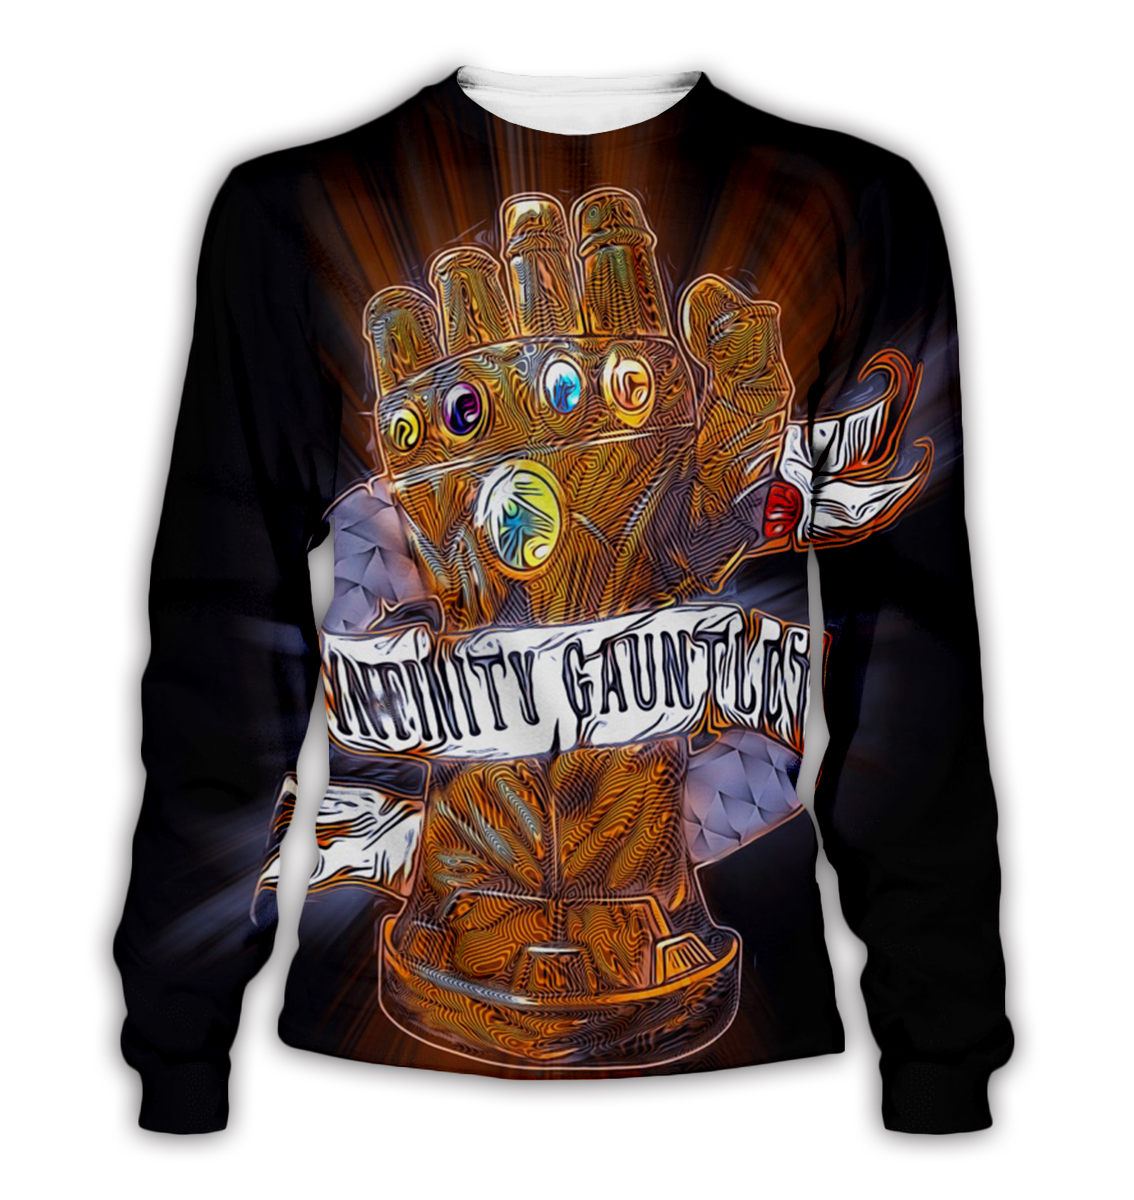 plstar-cosmos-2019-avenger-long-sleeve-sweatshirt-font-b-marvel-b-font-thanos-infinity-glove-3d-print-pullover-plus-size